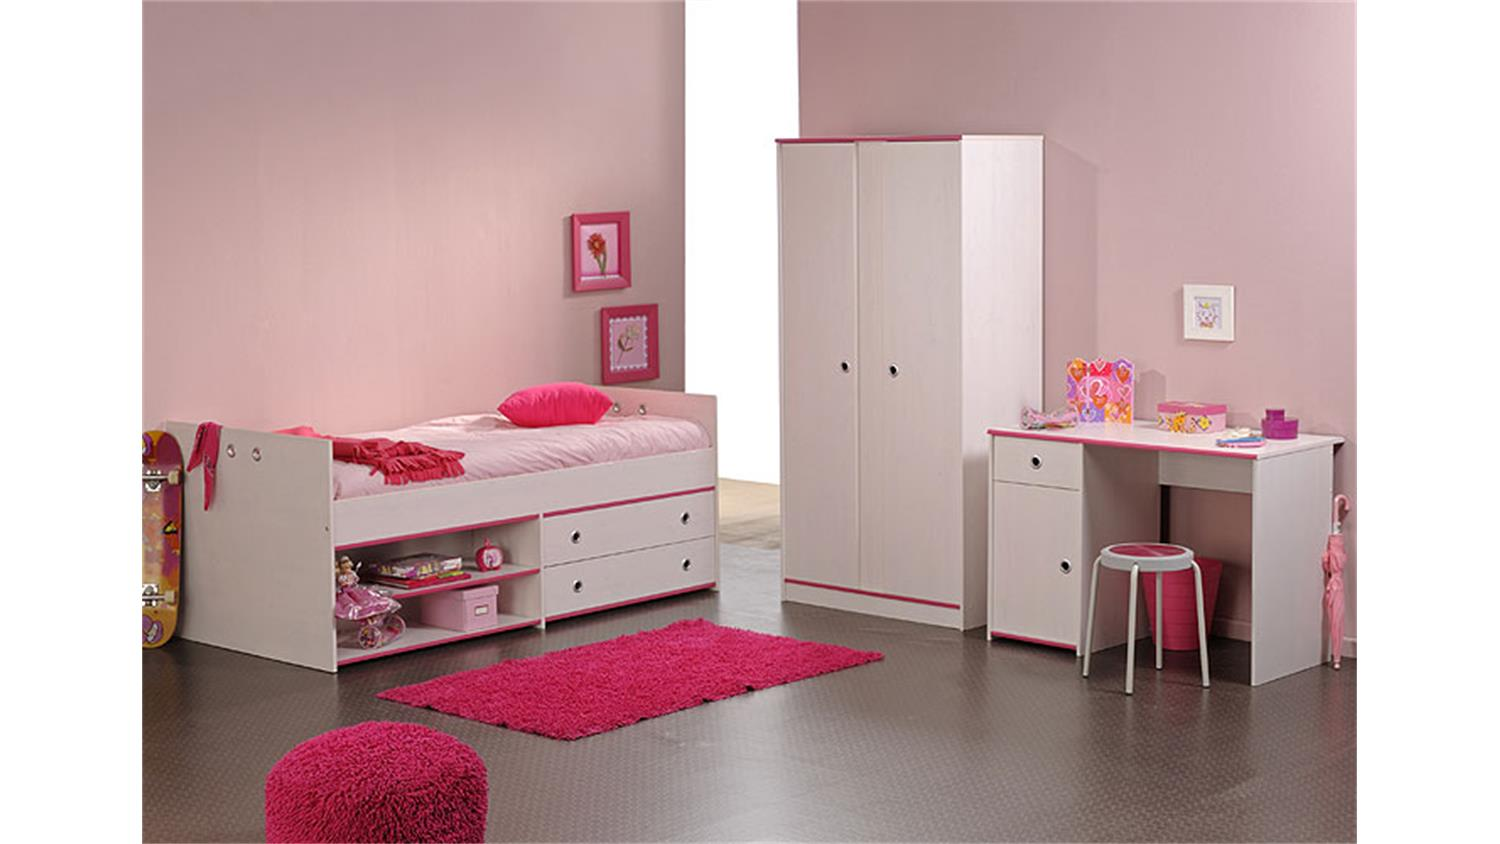 kinderzimmer set smoozy 7 in kiefer wei kanten blau pink 3 teilig. Black Bedroom Furniture Sets. Home Design Ideas